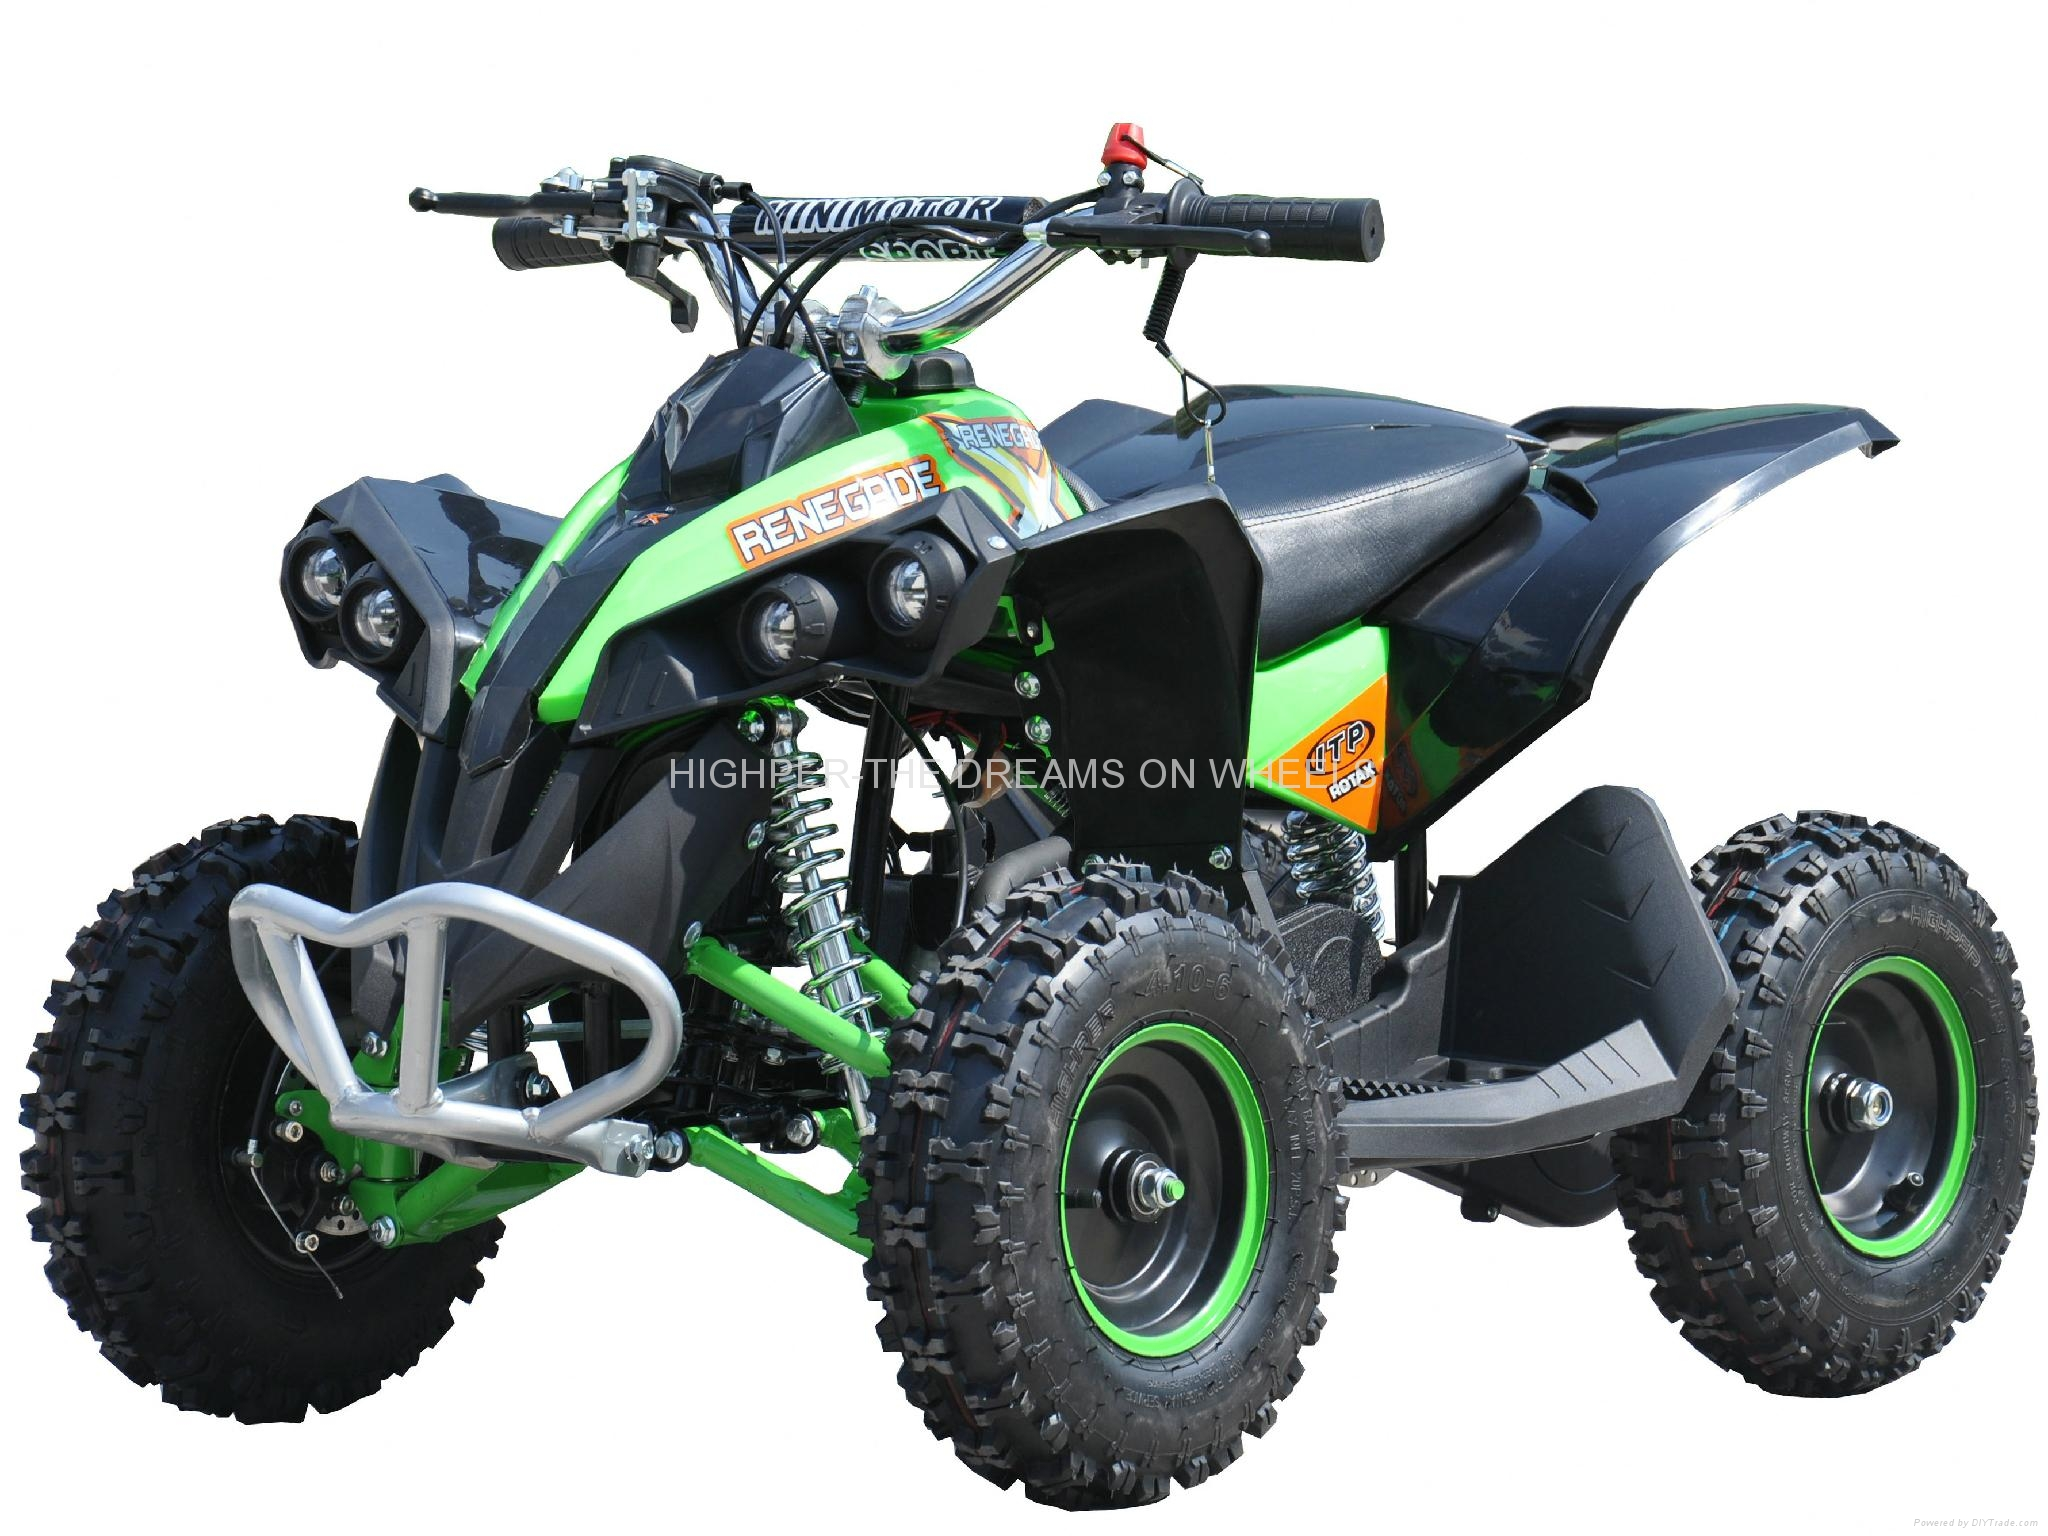 2018 new mini atv 49cc renegade renegade atv 3 china manufacturer atv quad scooters. Black Bedroom Furniture Sets. Home Design Ideas